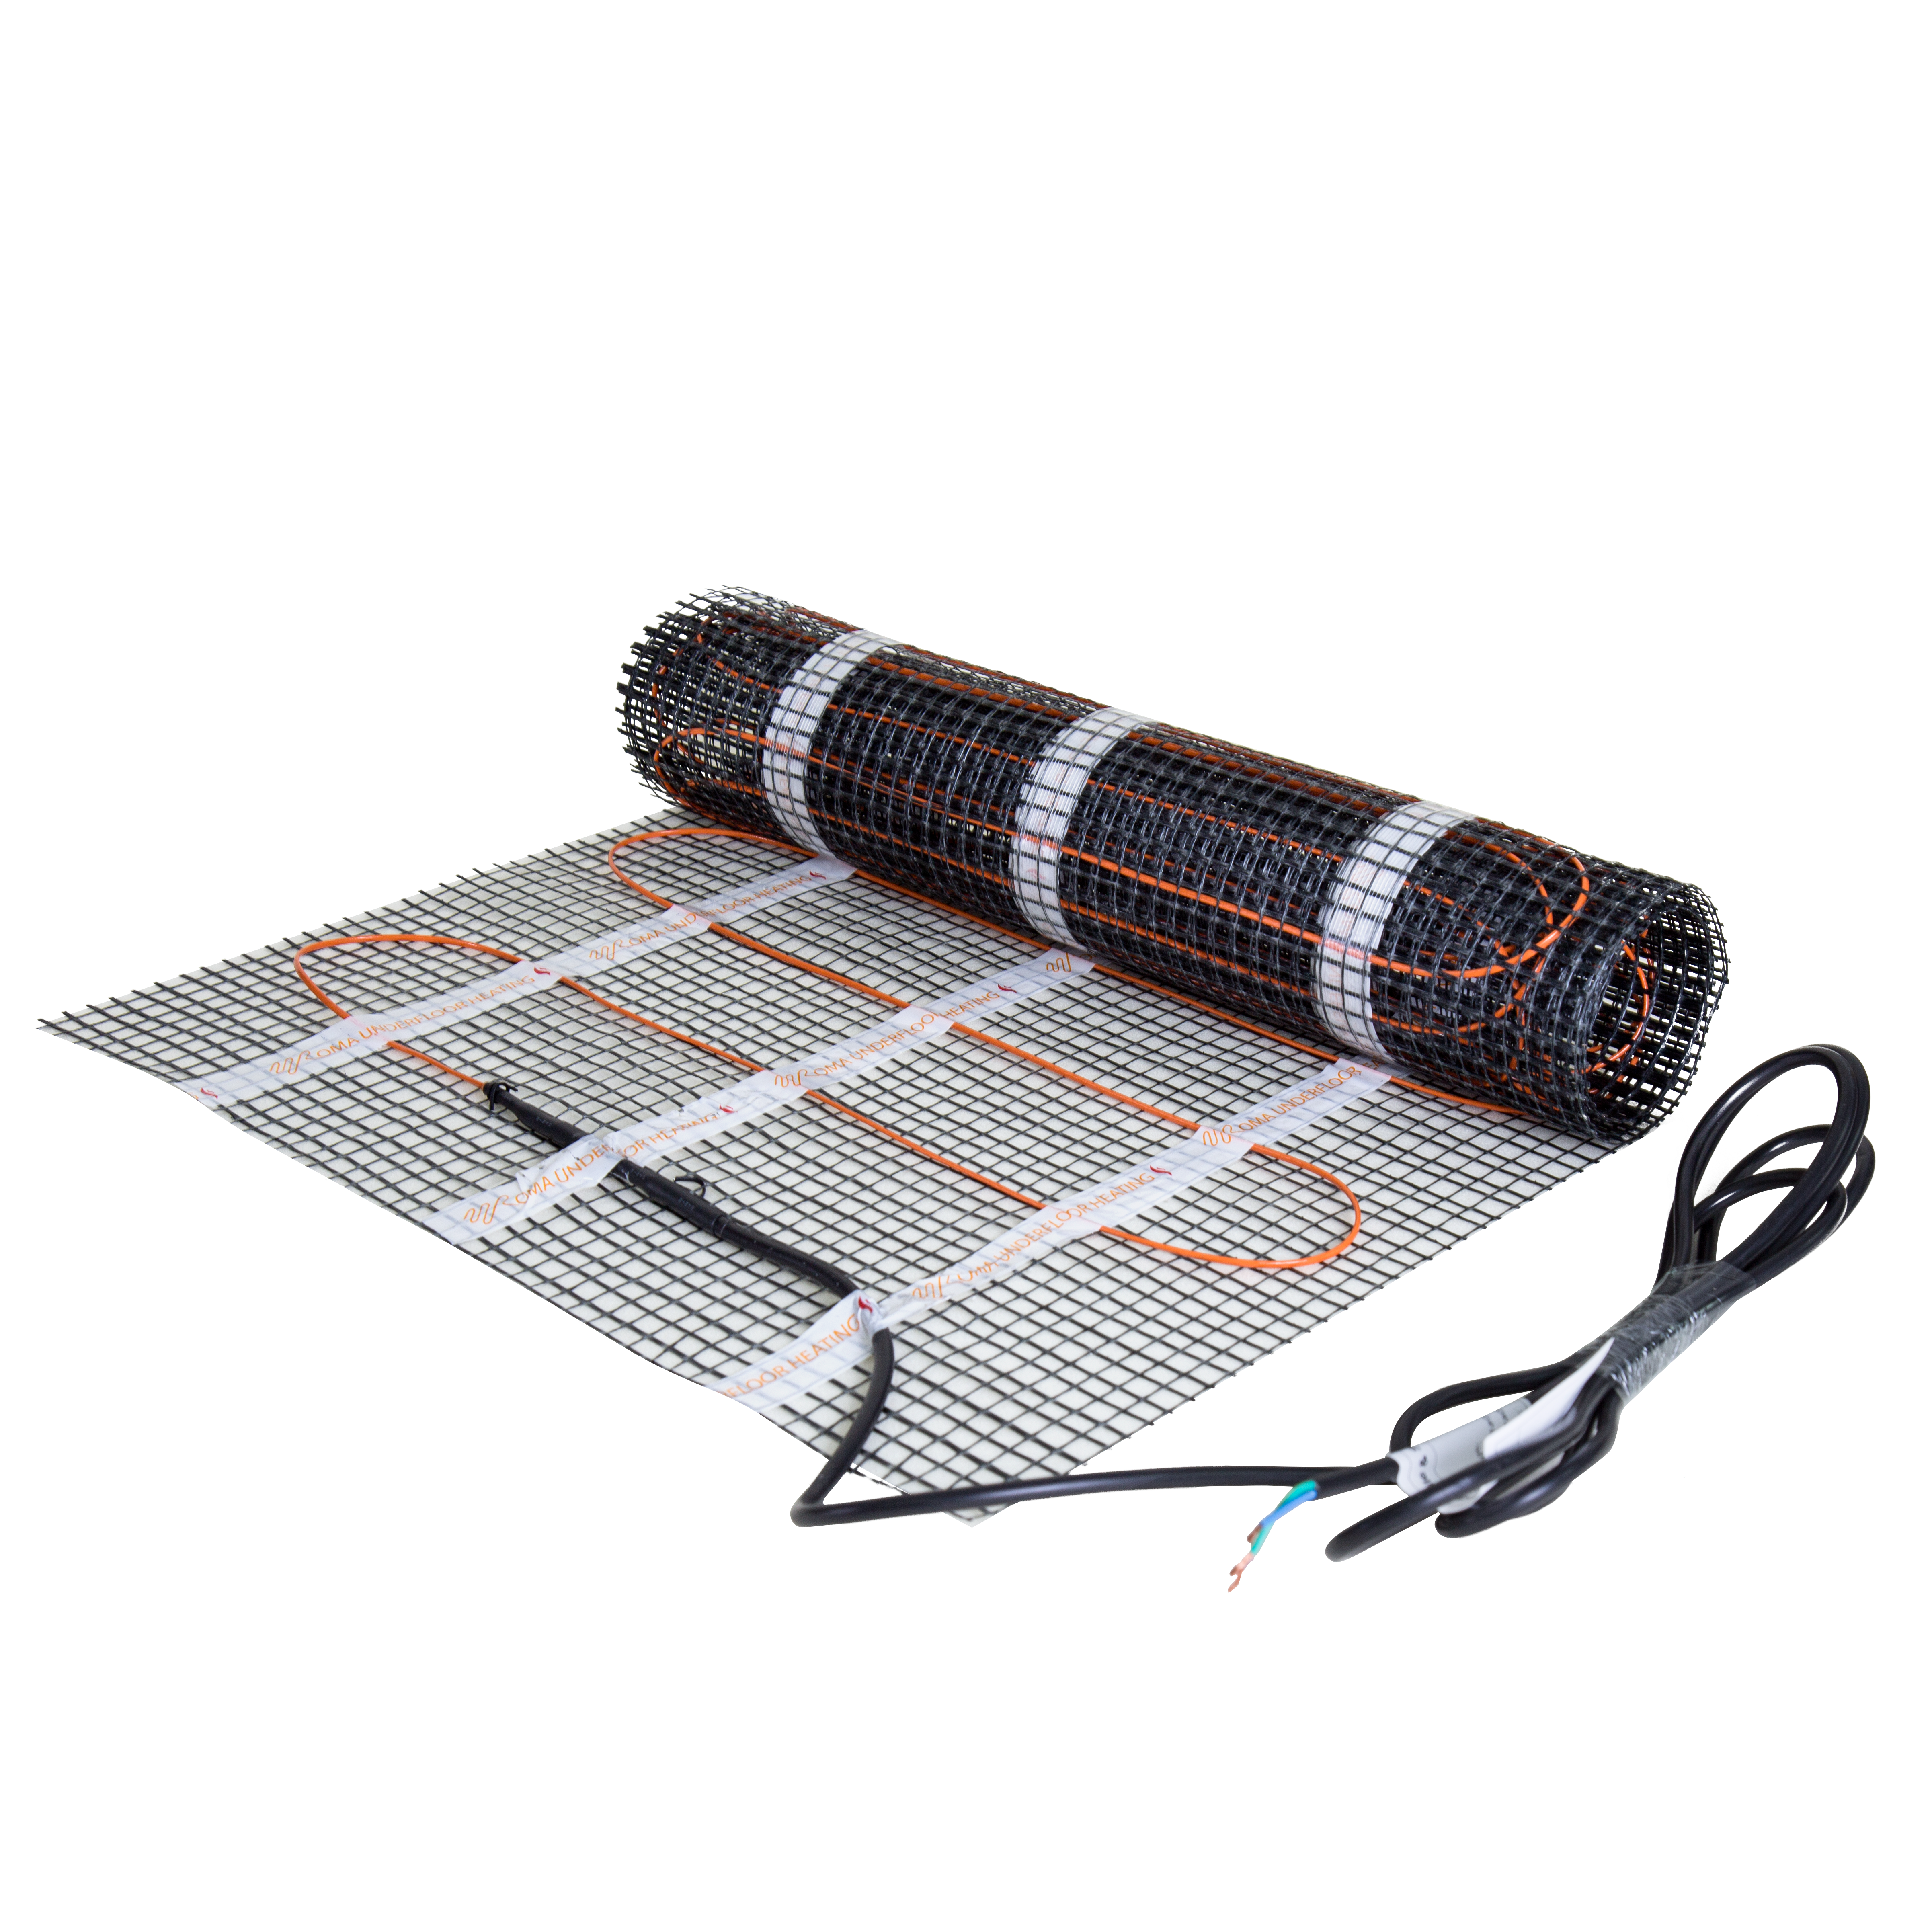 Roma Heating Resources Electric Underfloor Thermostat Installation Guide By Discount Floor The Cable Kit Includes High Adhesion Fibre Tape A Probe Which Is Included With Your Option And Full Fitting Instructions